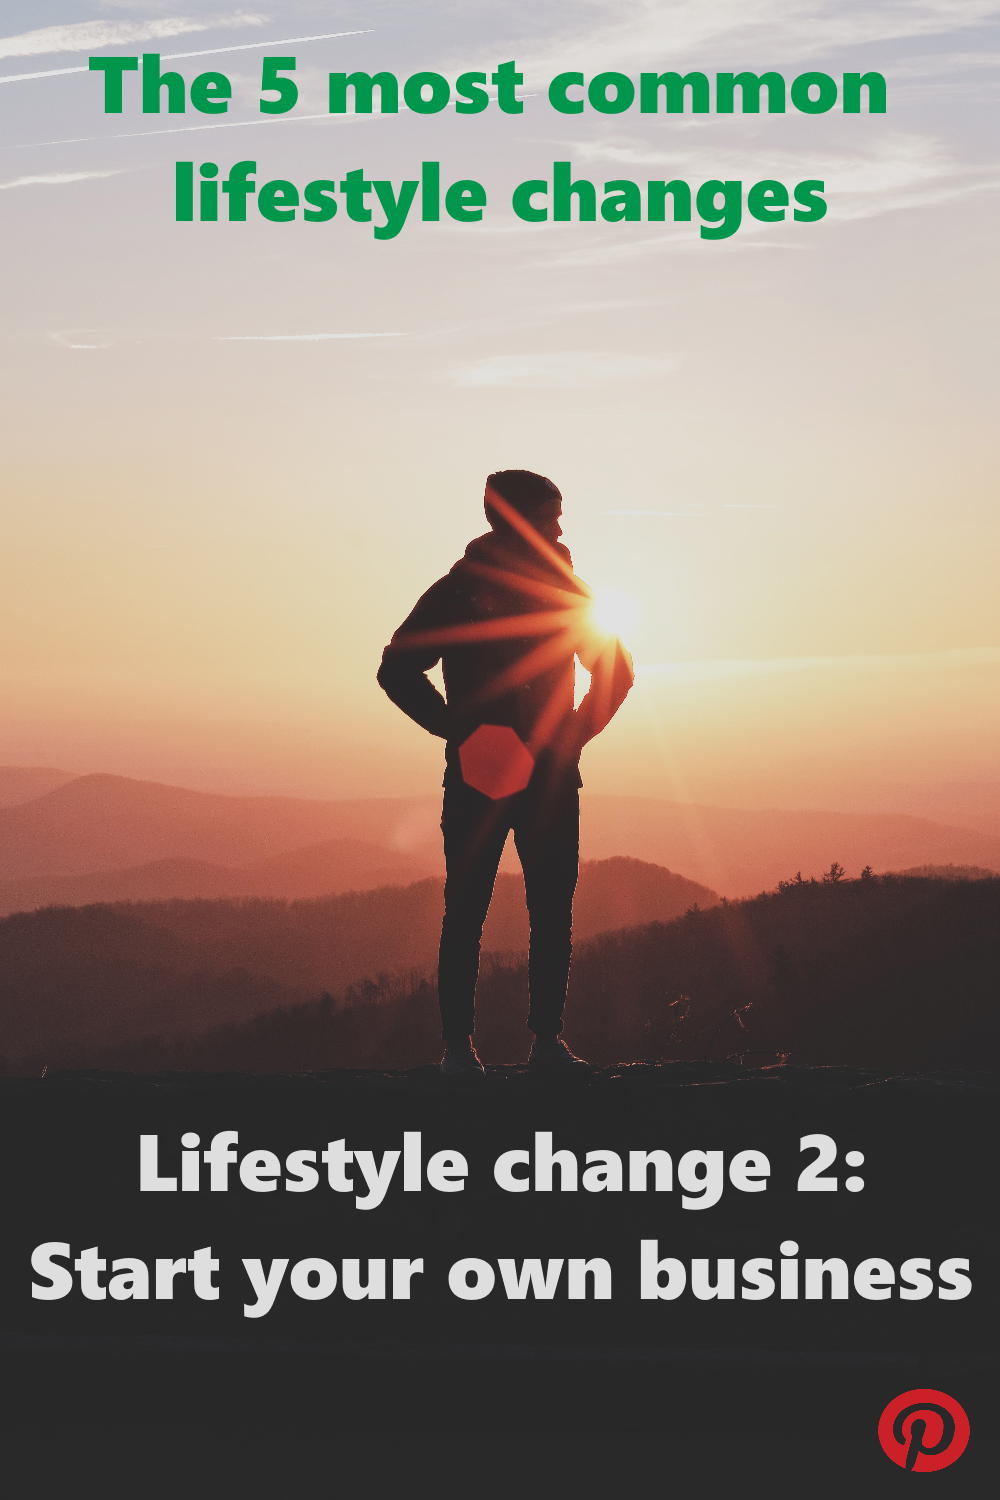 The 5 most common lifestyle changes – #2 Starting your own business